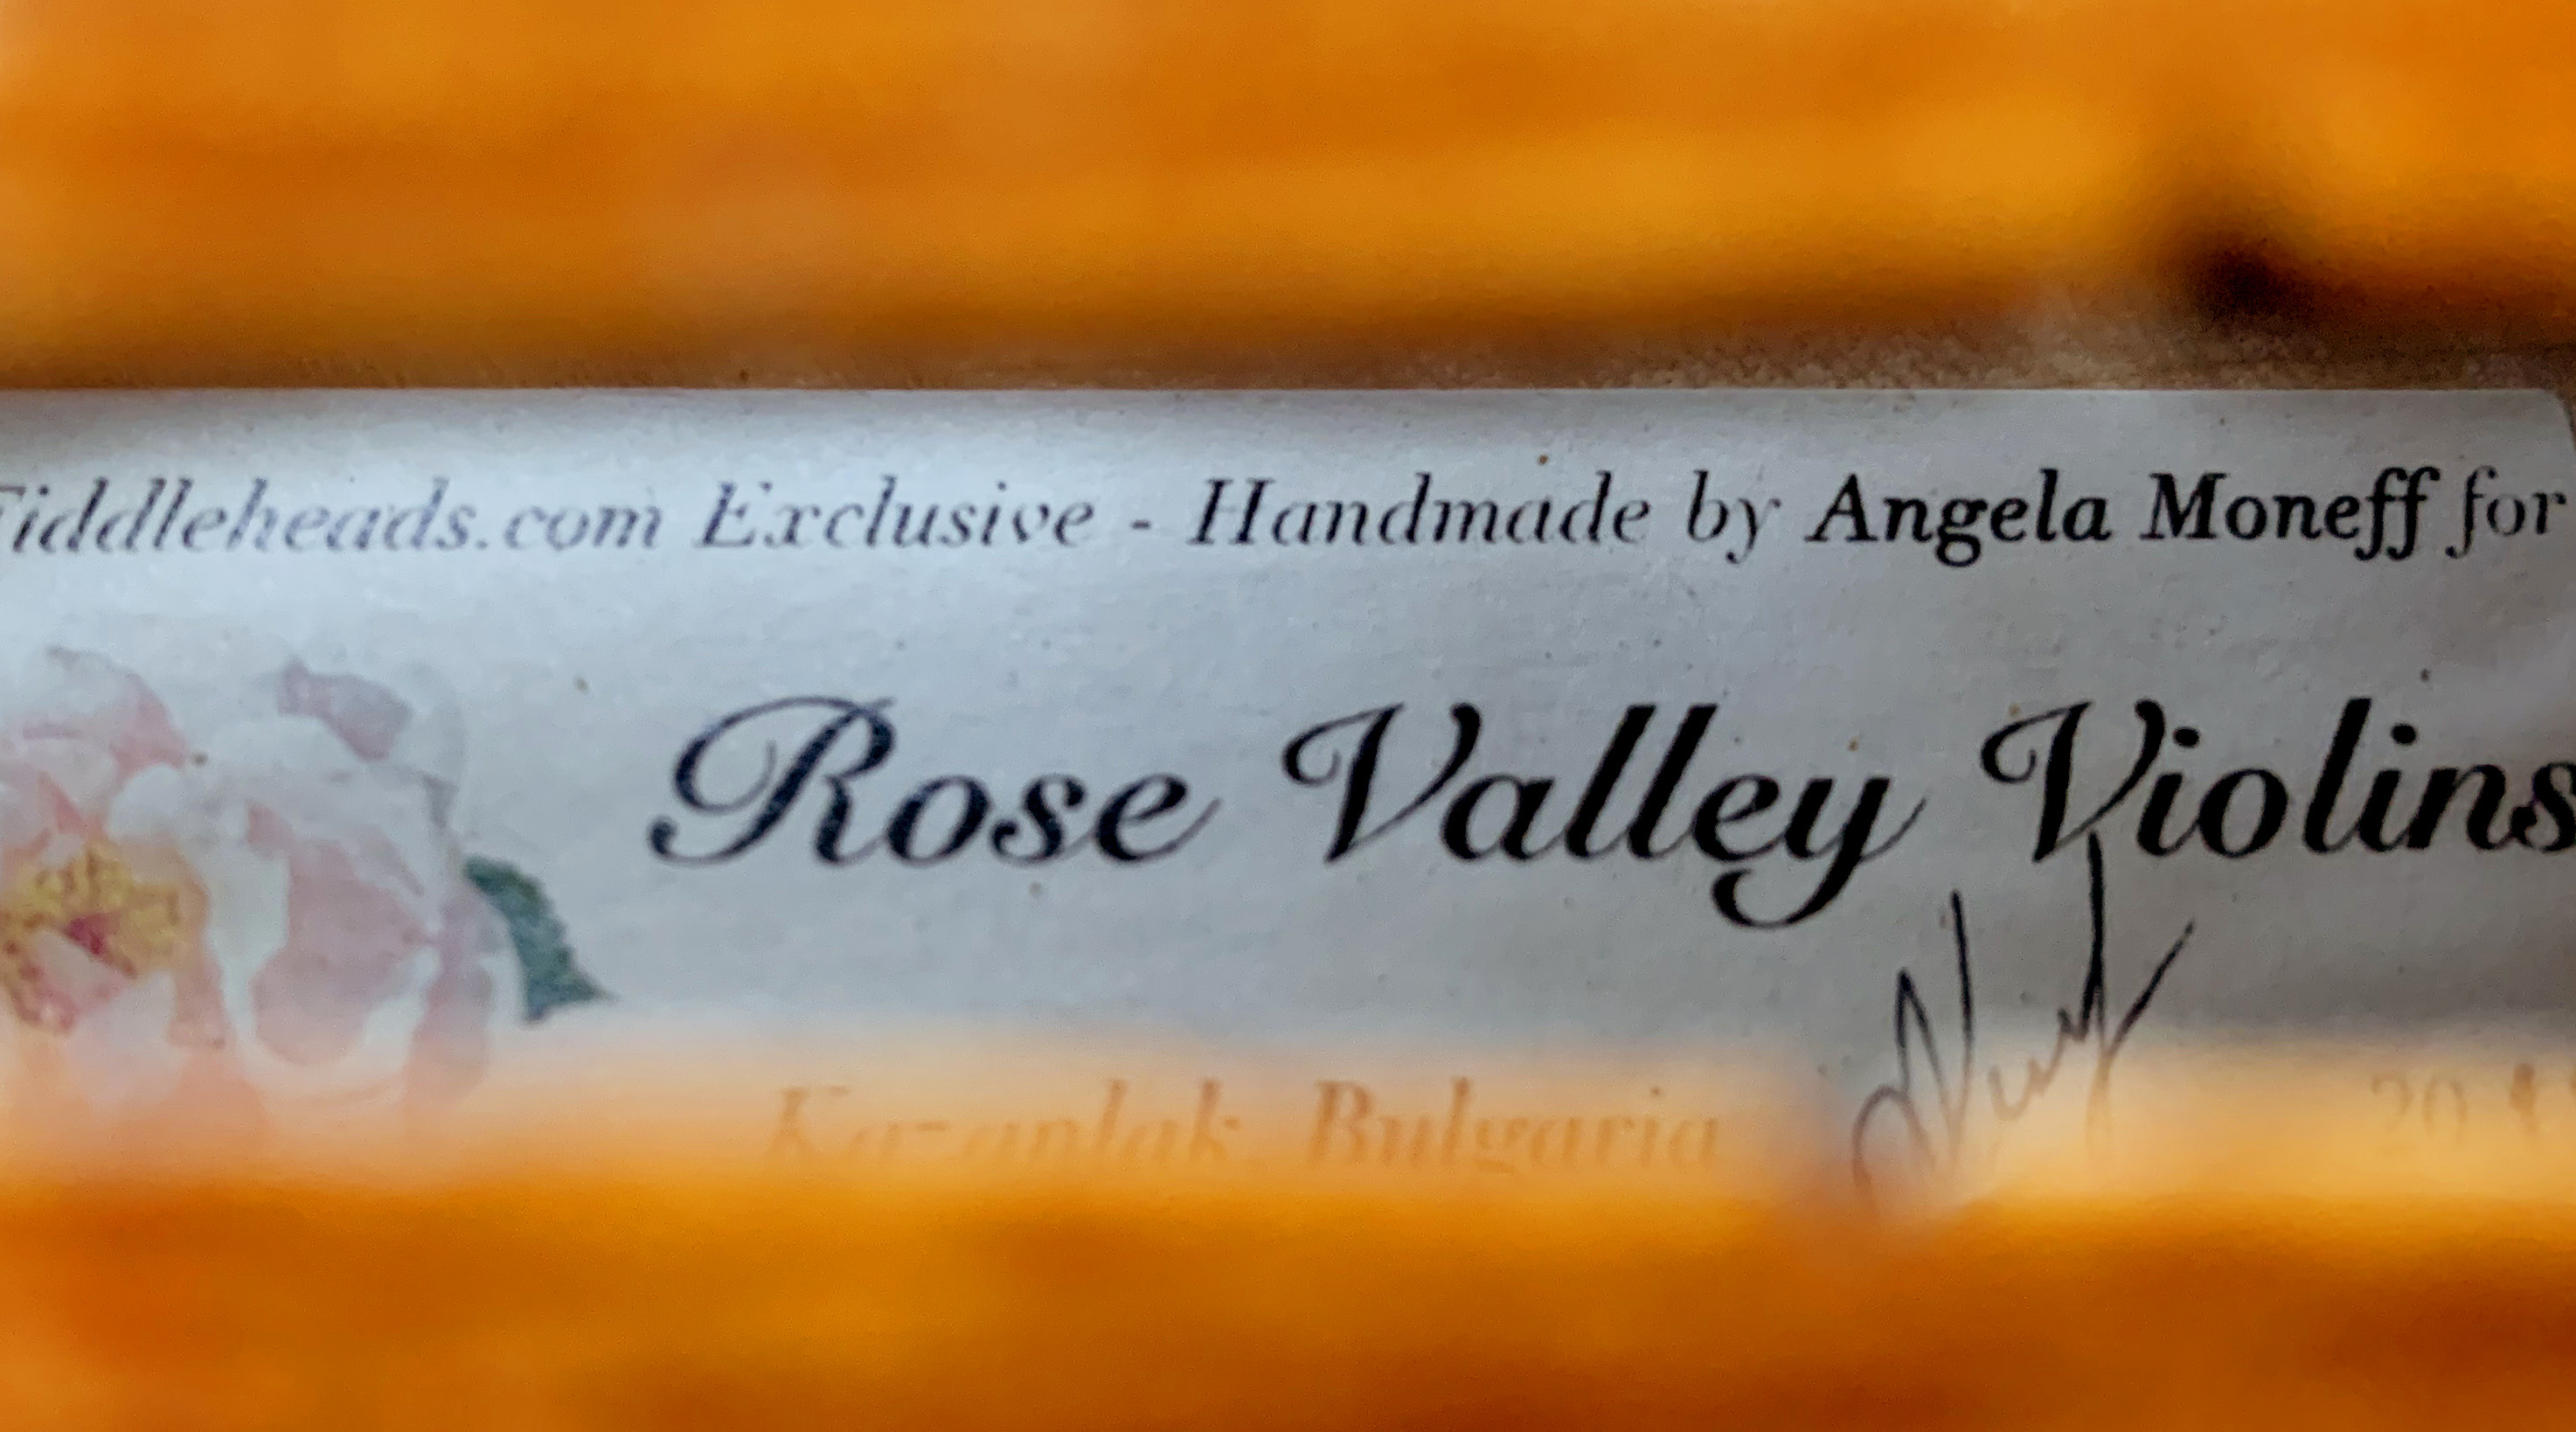 Rose Valley Violins - Fiddleheads Exclusive